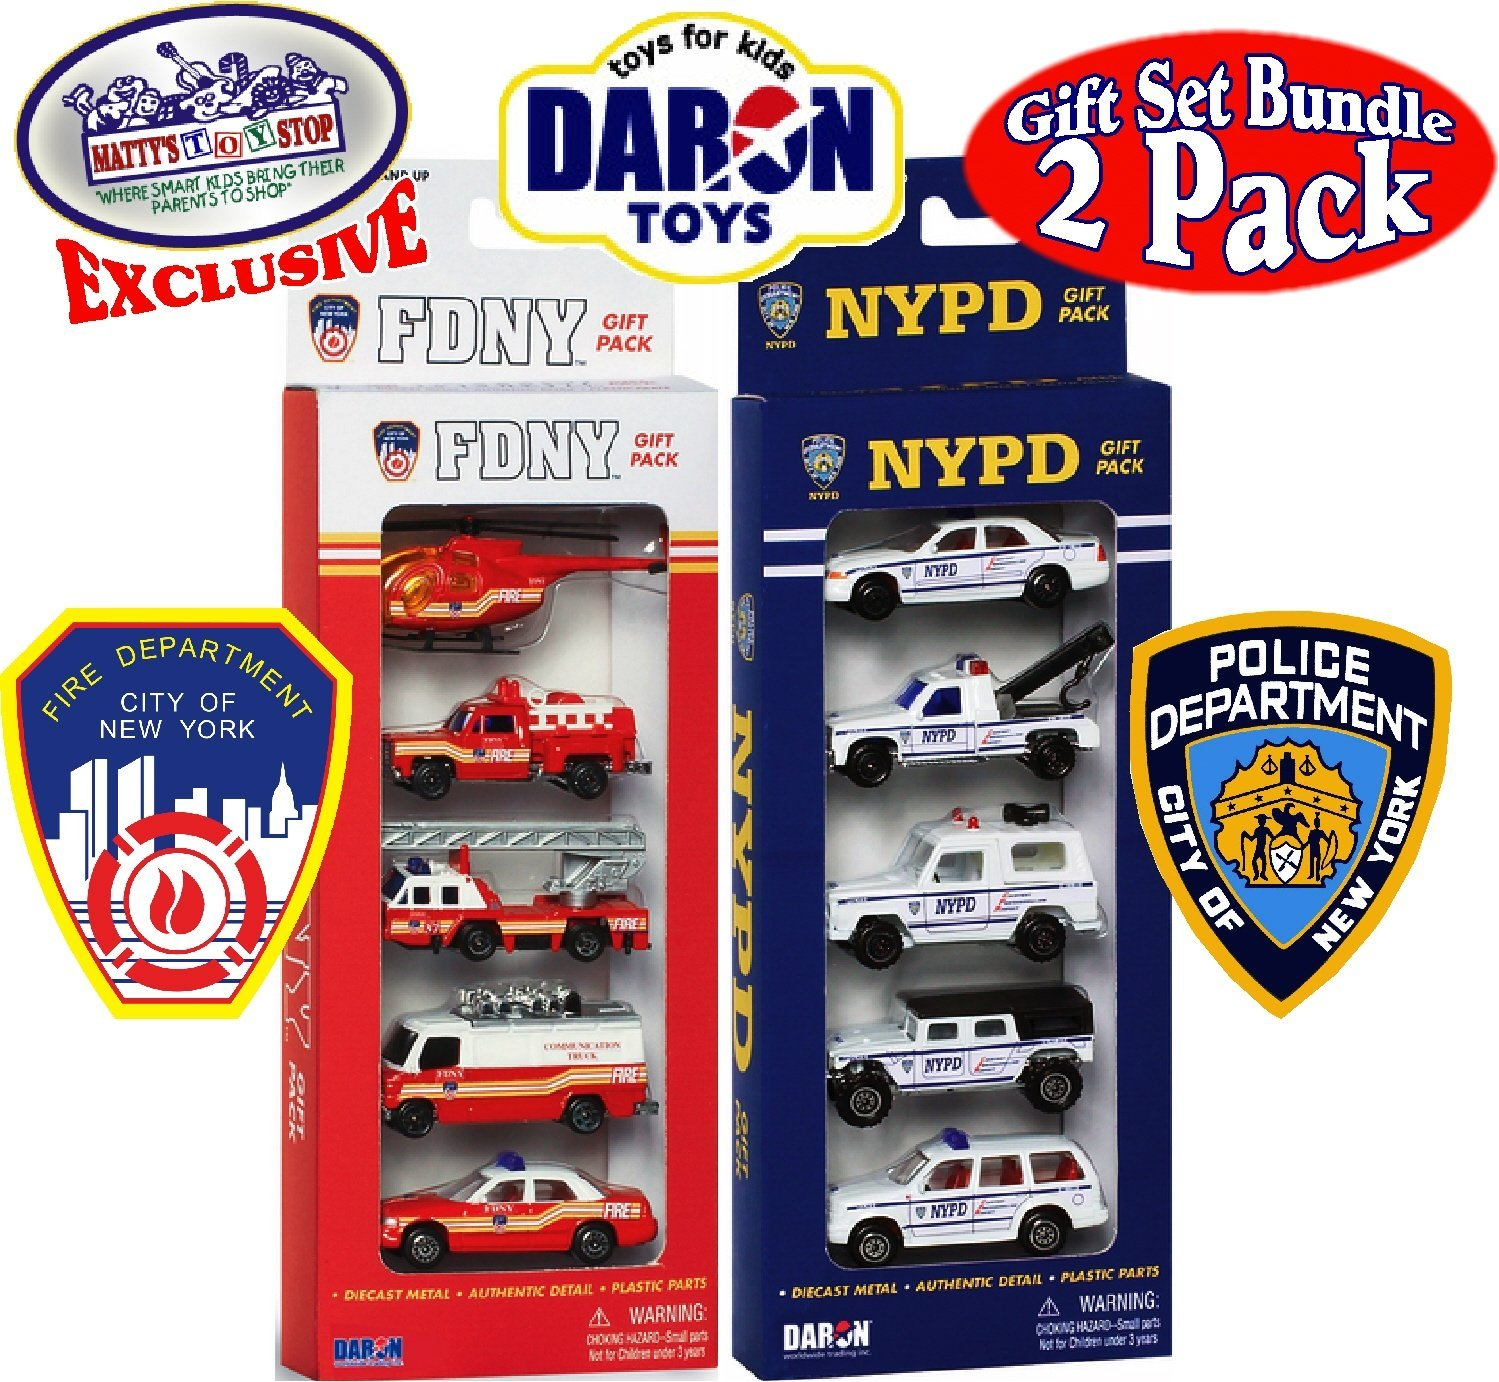 """Daron FDNY (Fire Department City of New York) & NYPD (New York City Police Department) Emergency Vehicles """"Matty's Toy Stop"""" Exclusive Gift Set Bundle - 2 Pack (10 Vehicles Total)"""